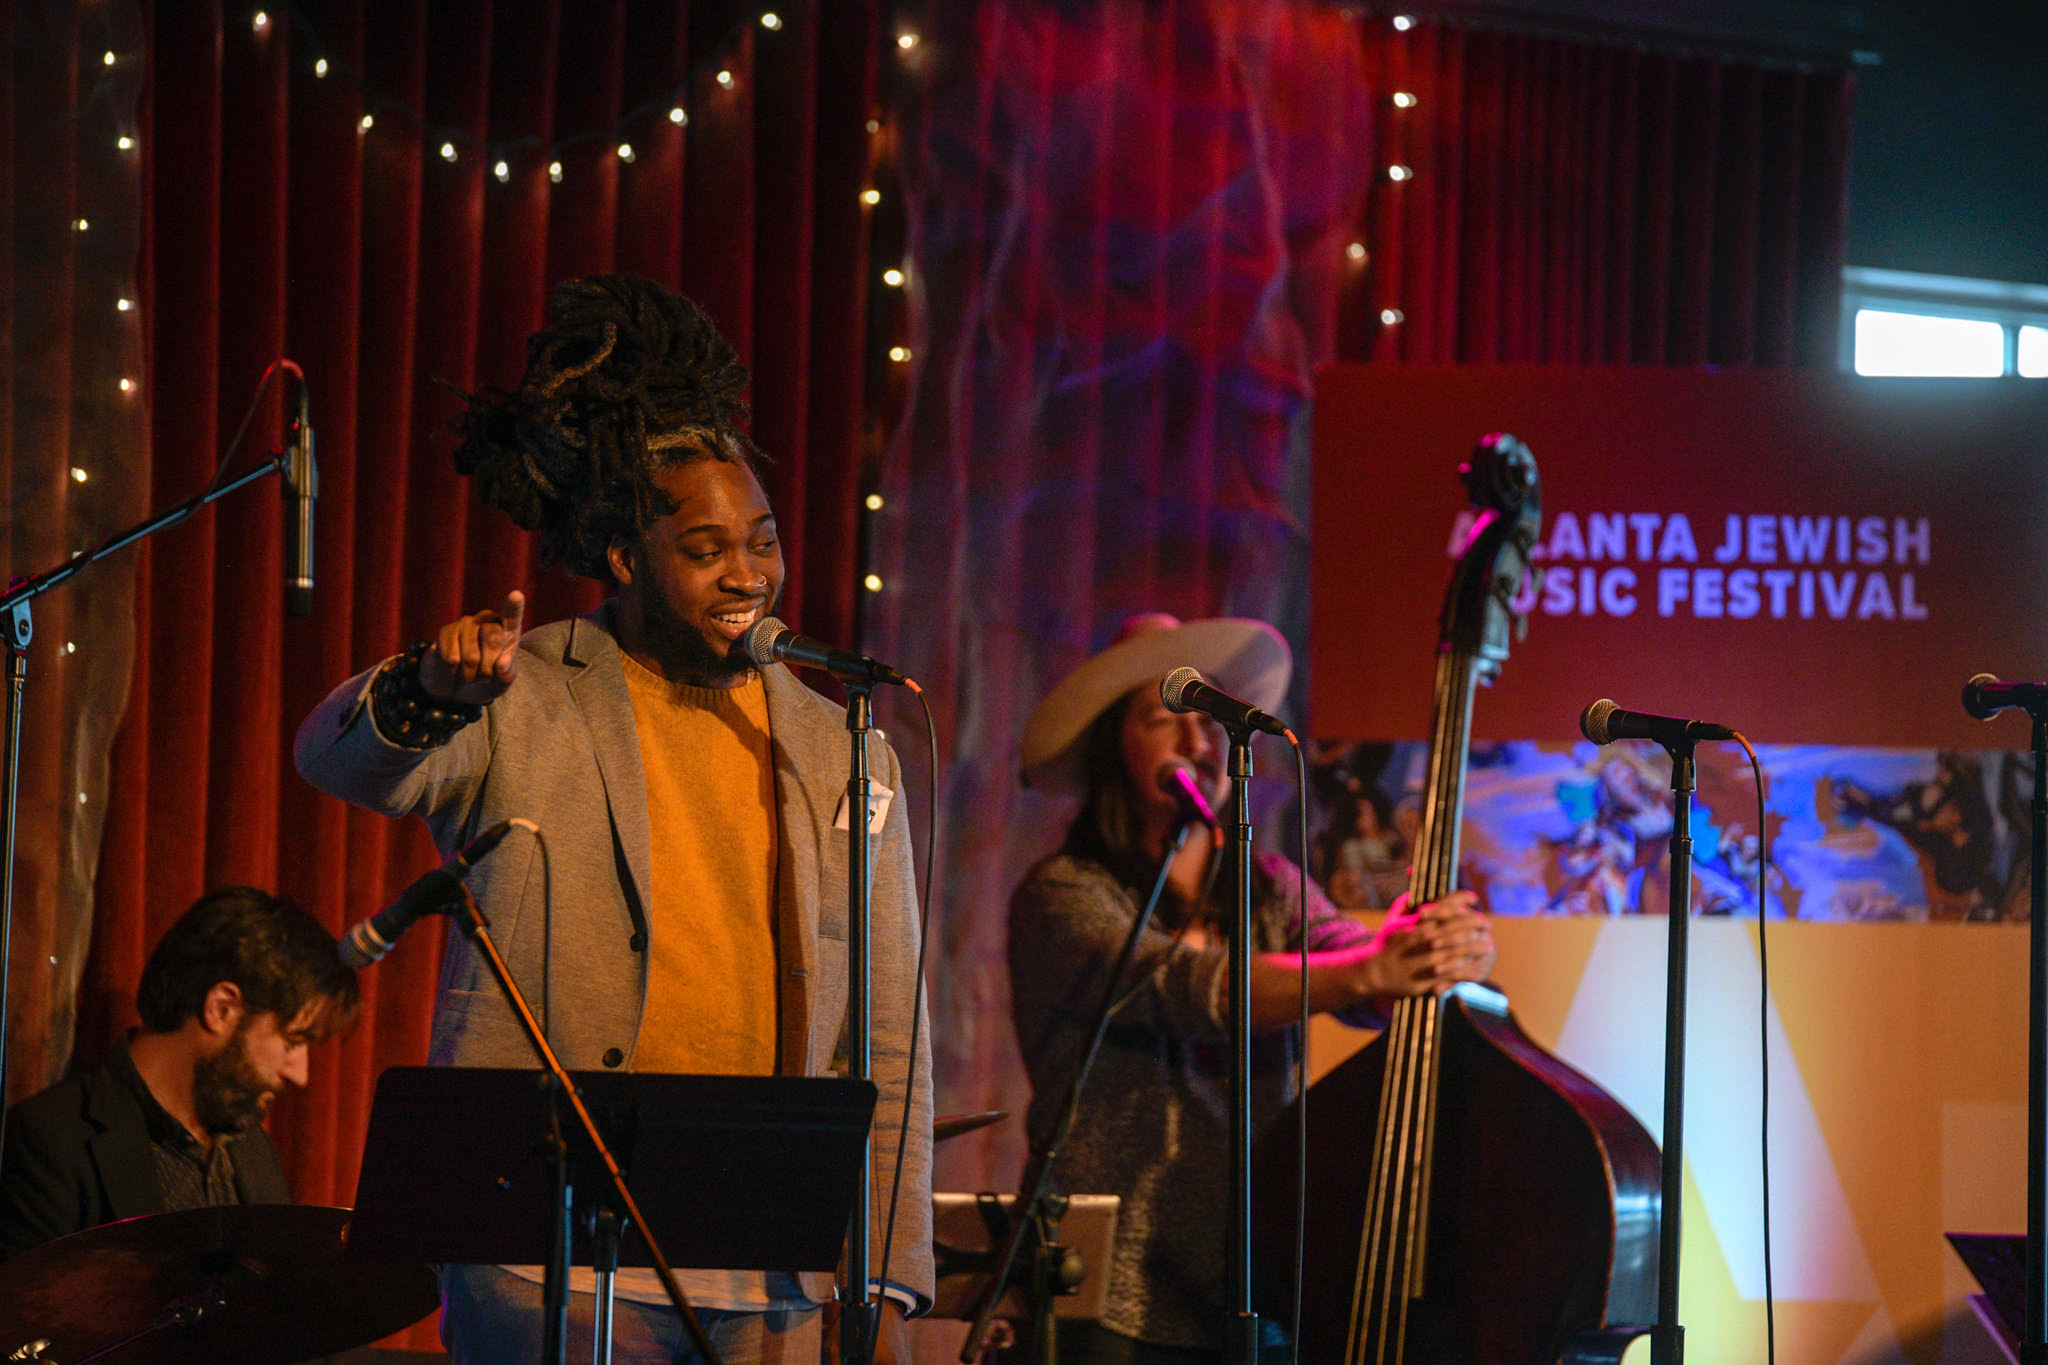 """The Synagogue prayers had traces there in Andrew Tibbs' moans, The Old World met the cotton fields, The Warsaw ghetto shook hands w/ the Mississippi Delta, That suffering in Poland didn't sound that different than the suffering in Selma"" - ATL Collective's fabulous emcee, Adan Bean, walked us through the deeply important story of Jewish/black collaboration in American music via the fascinating, complicated story of Chess Records at Venkman's."